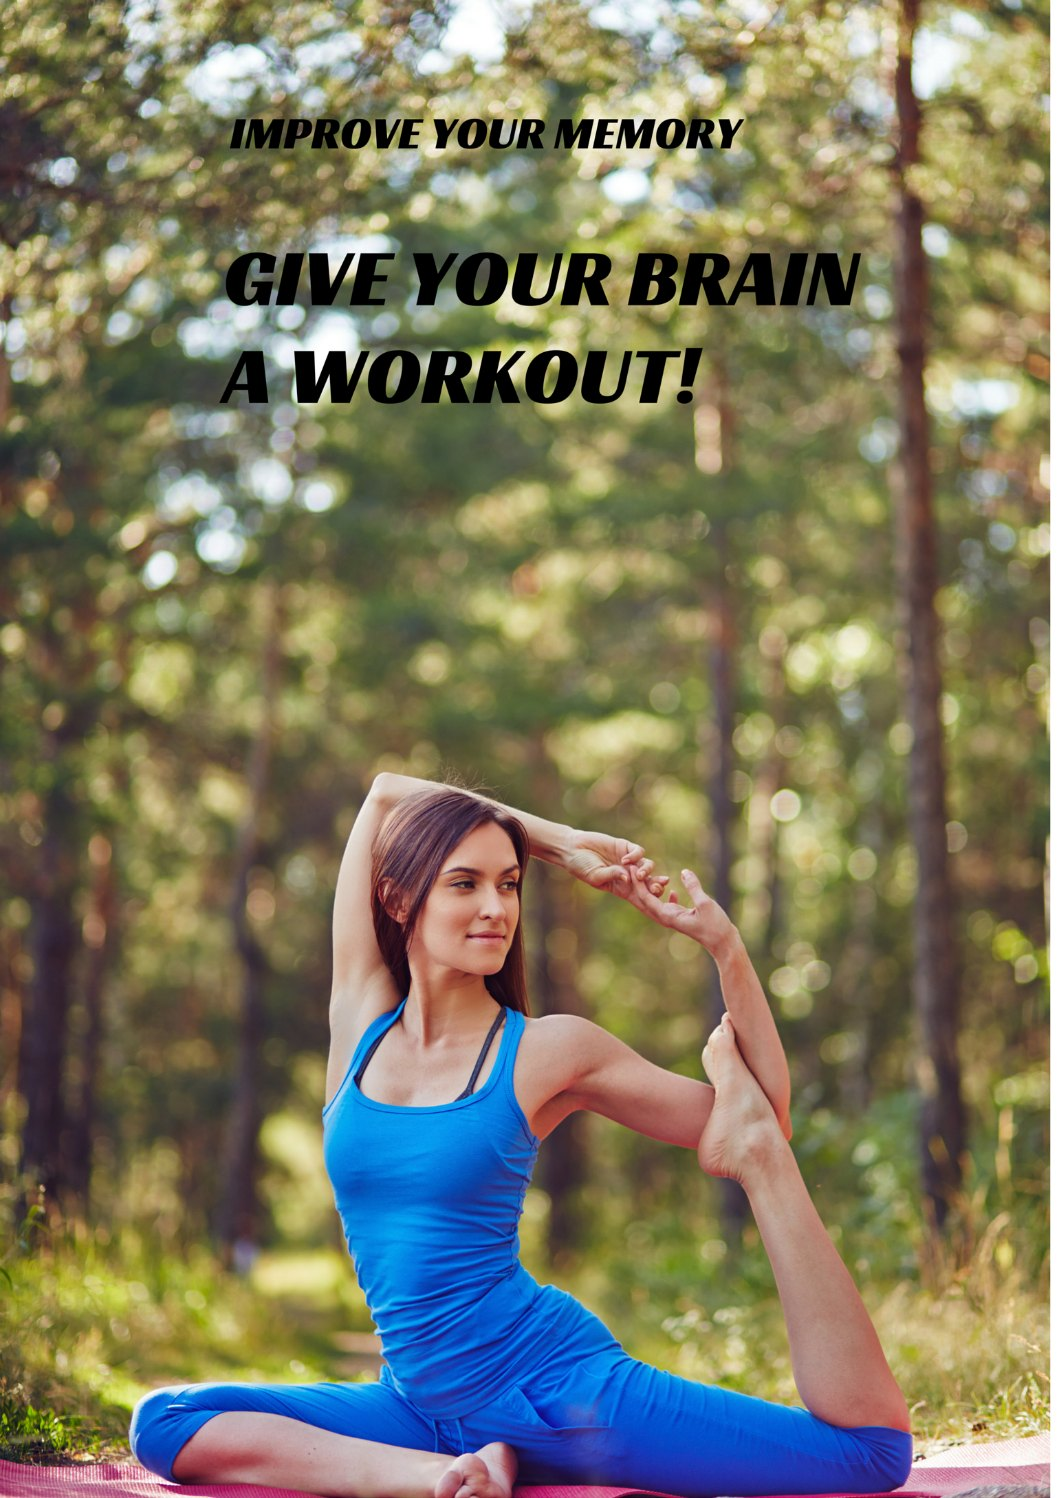 Improve your memory - give your brain a workout!